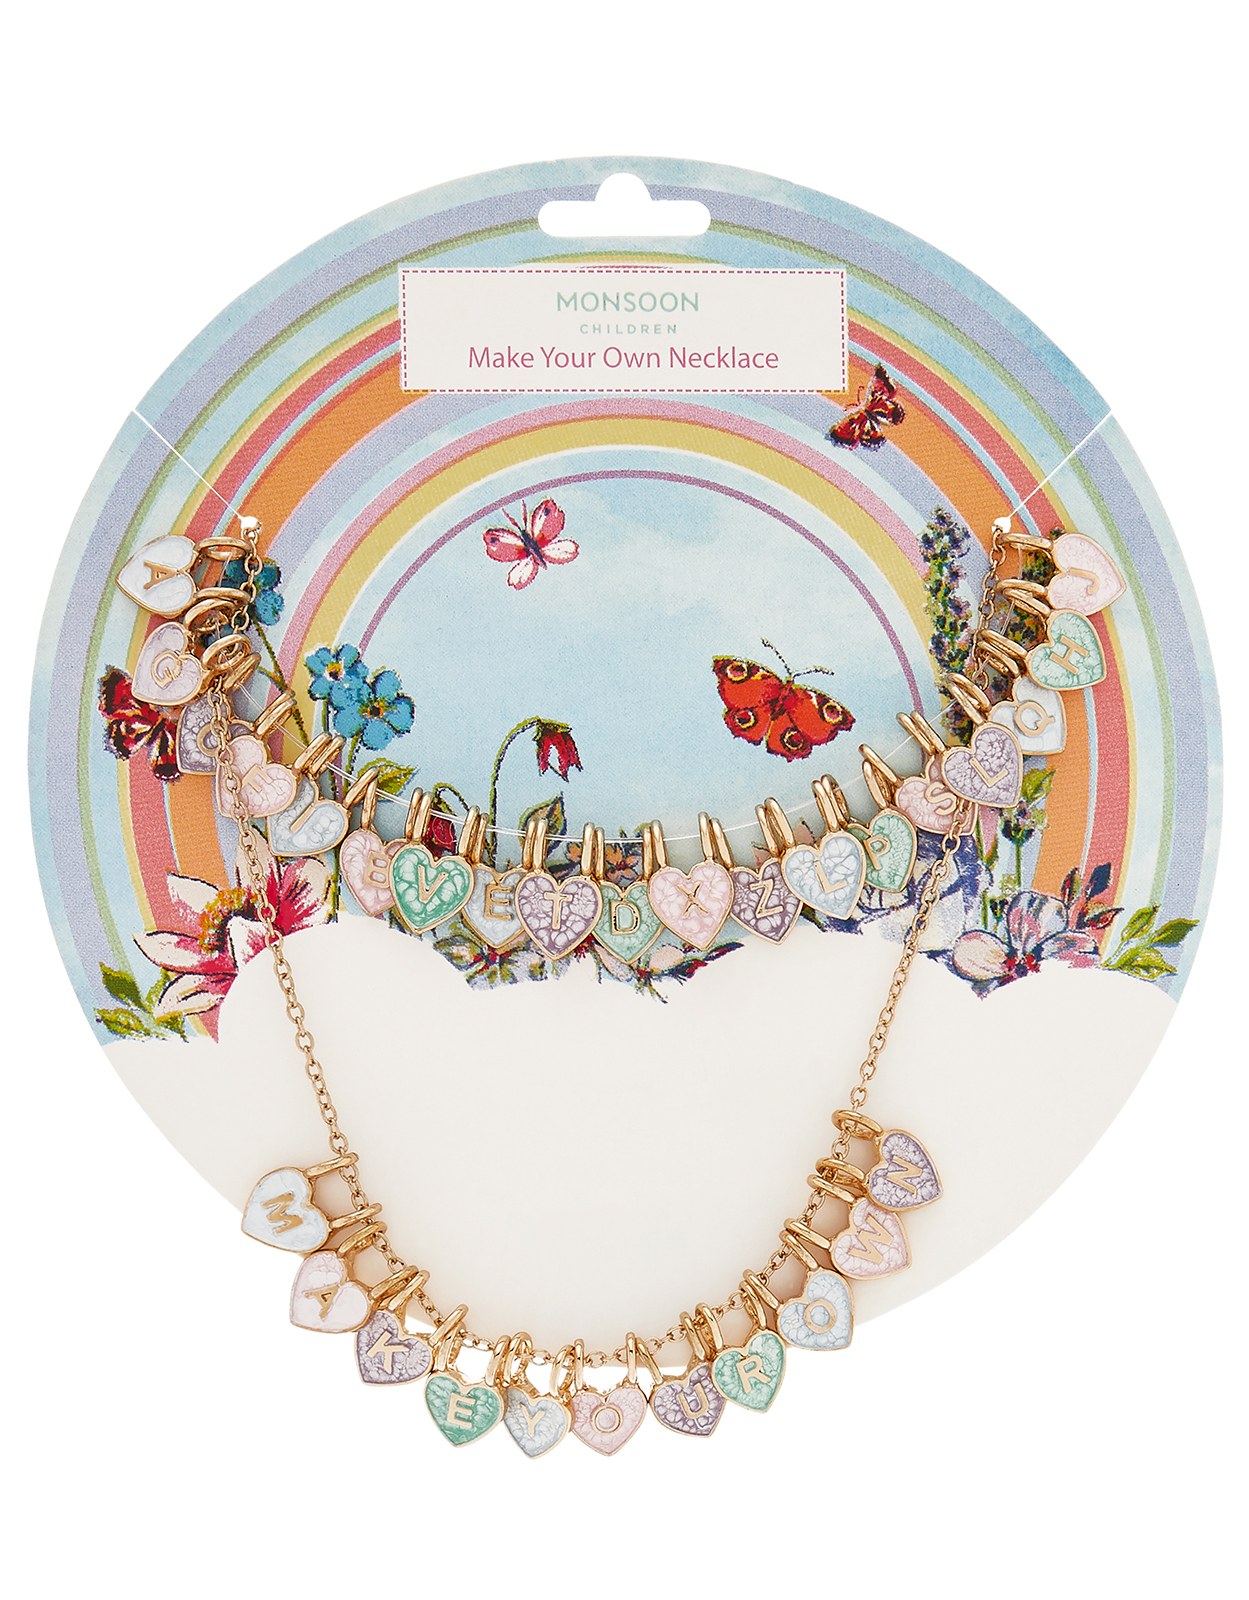 Monsoon Rainbow Dreams Make Your Own Necklace